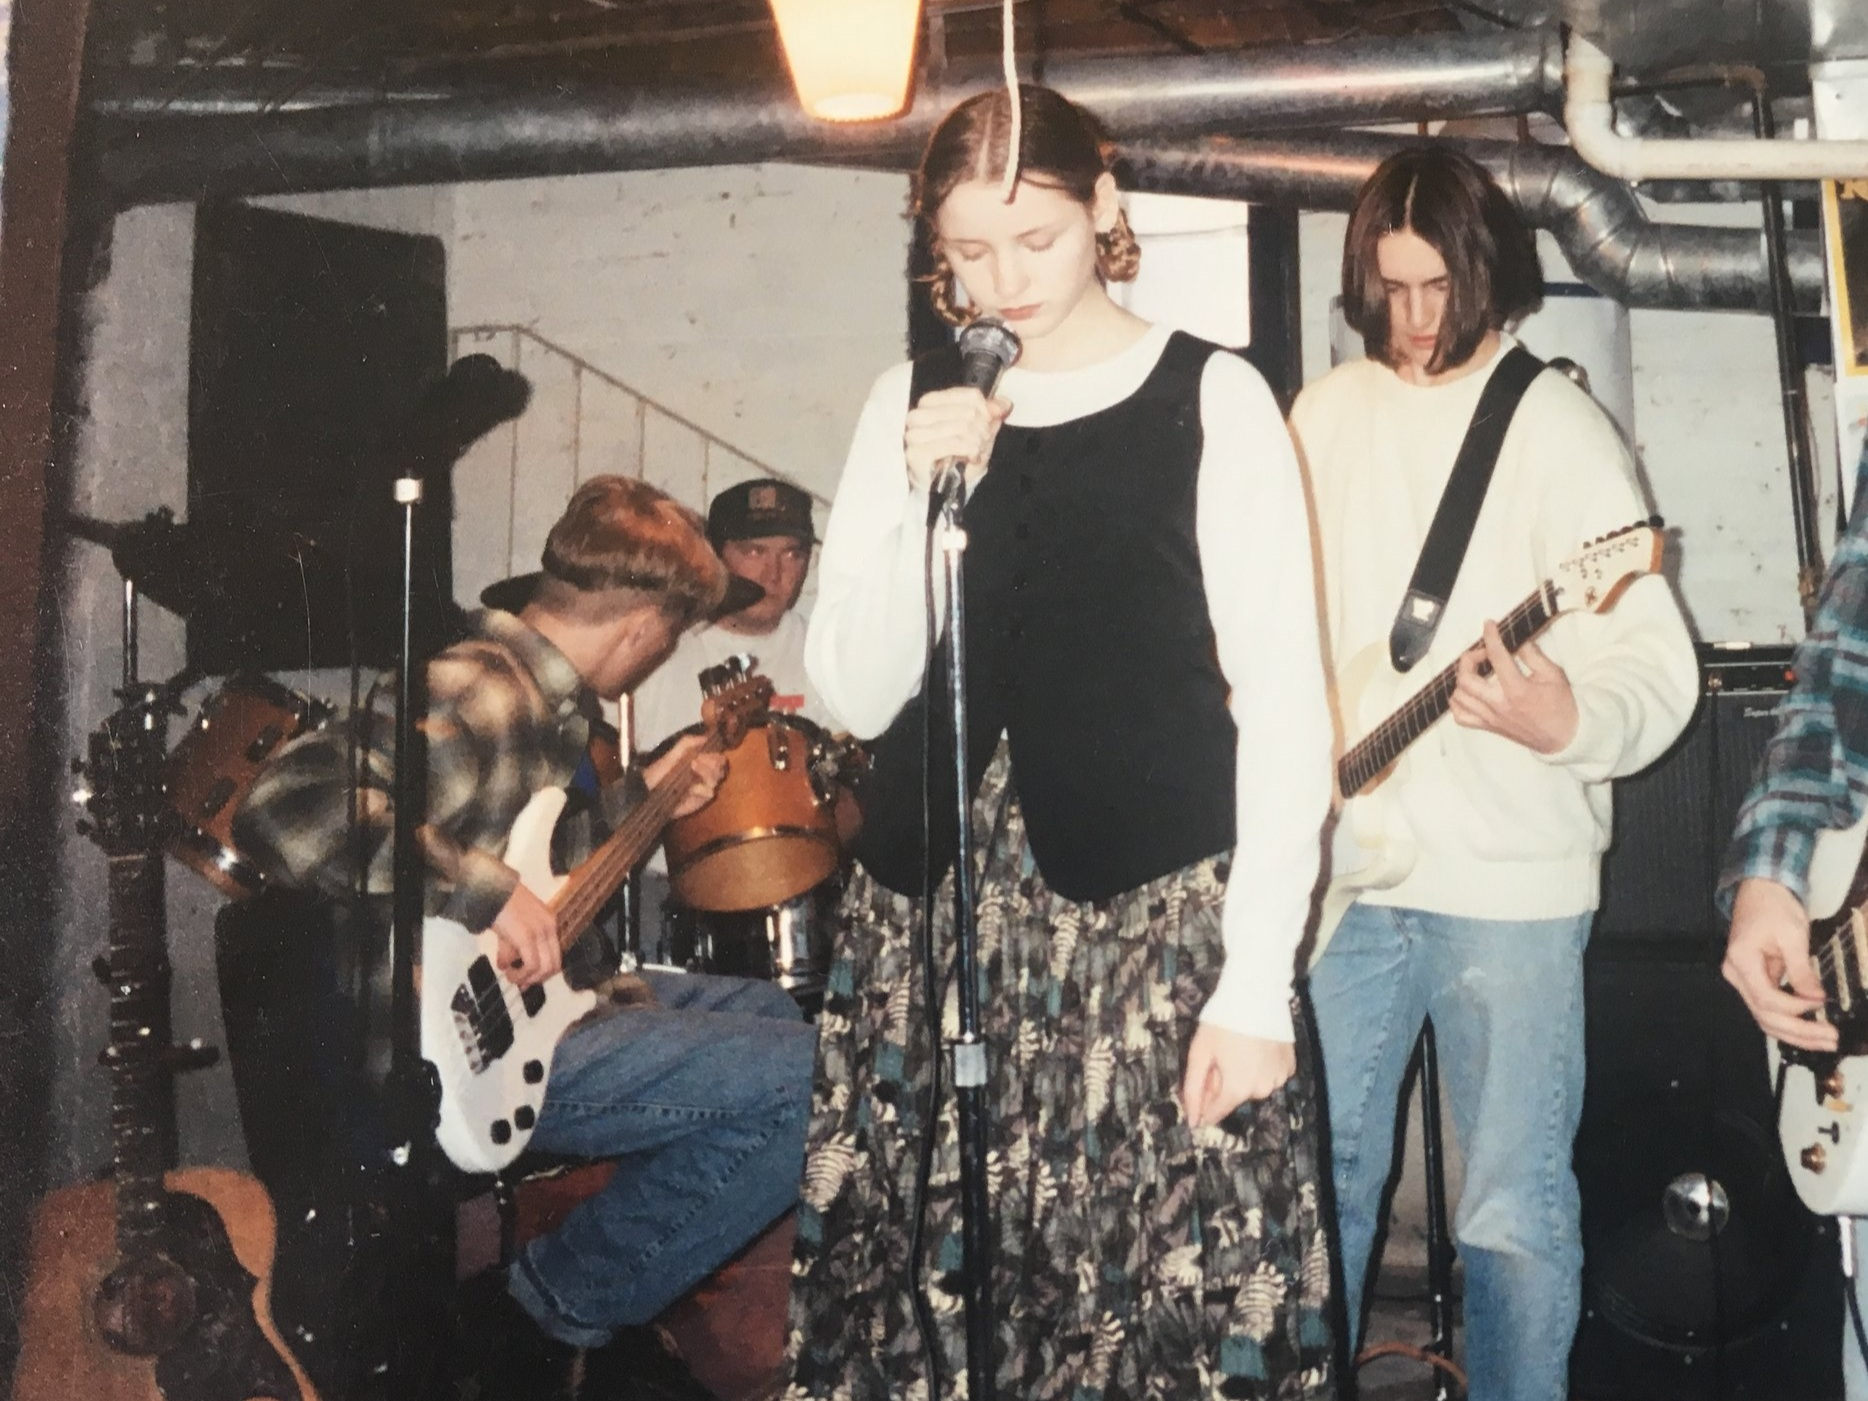 Dave and Kristine in David's parents' basement rehearsing, 1994.